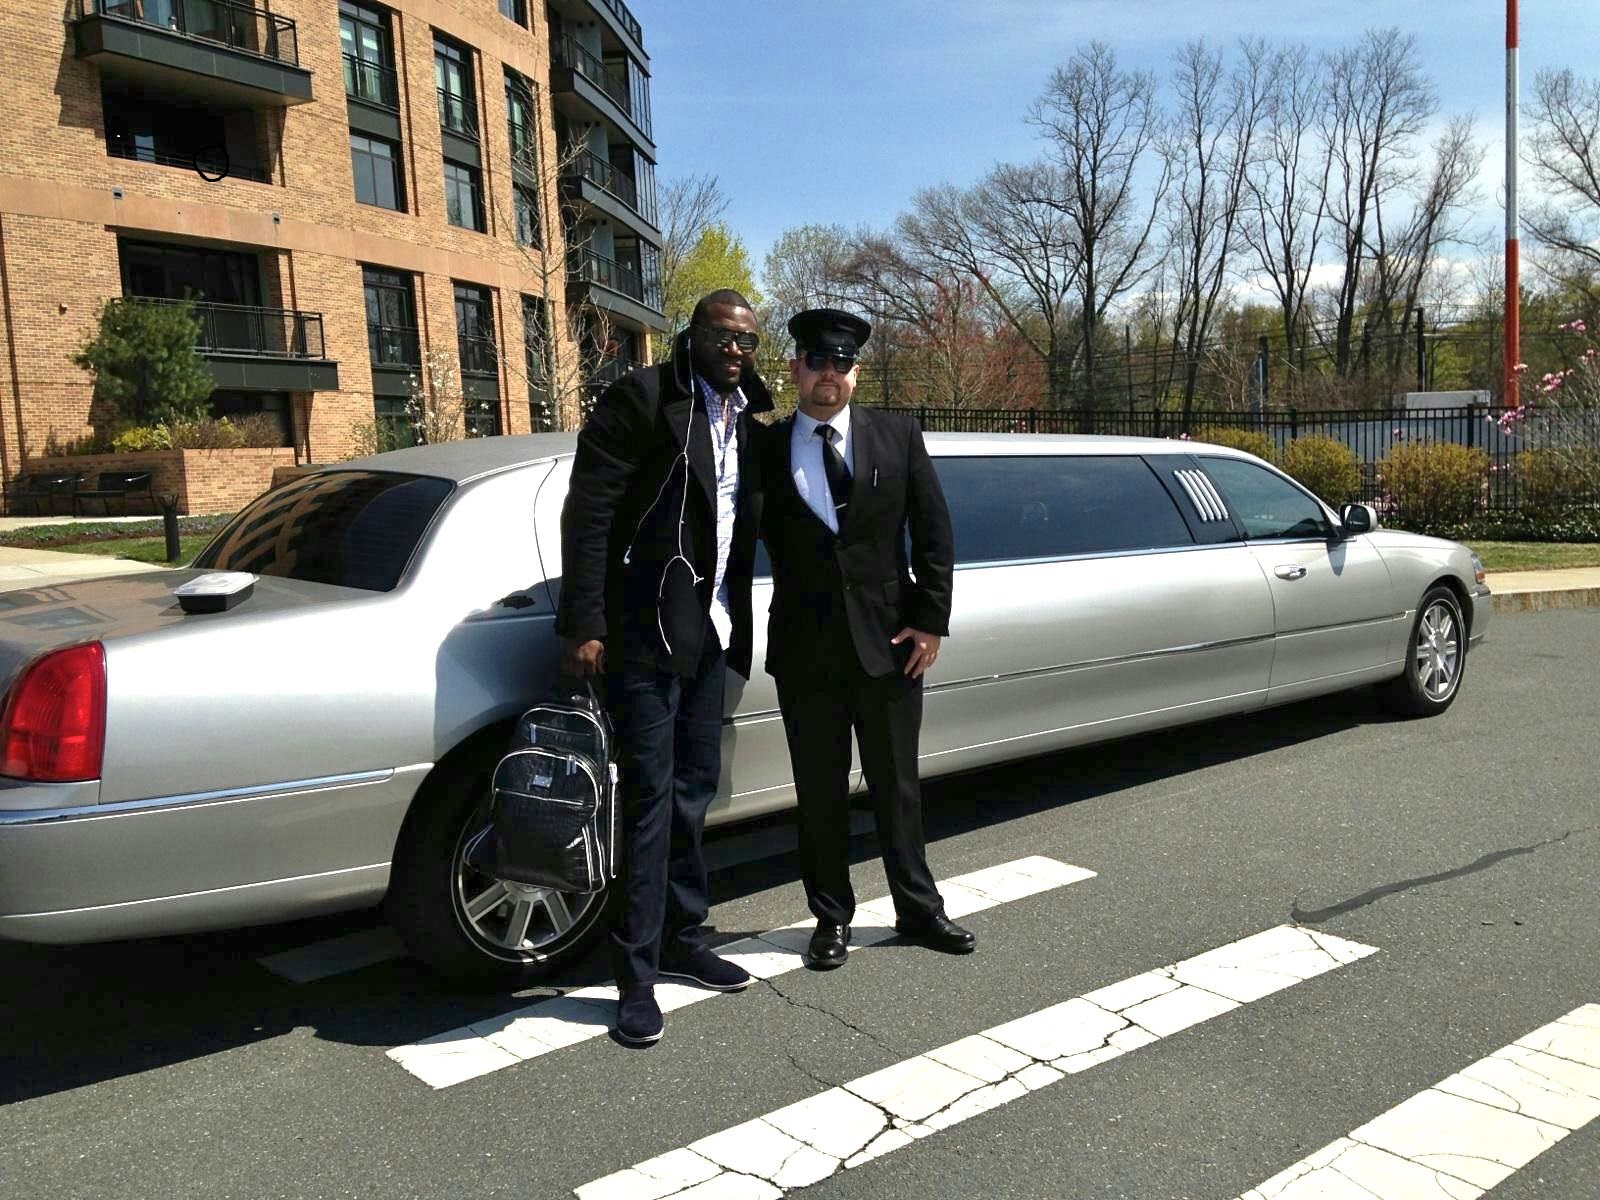 Limos for Rent Mason NH 03048